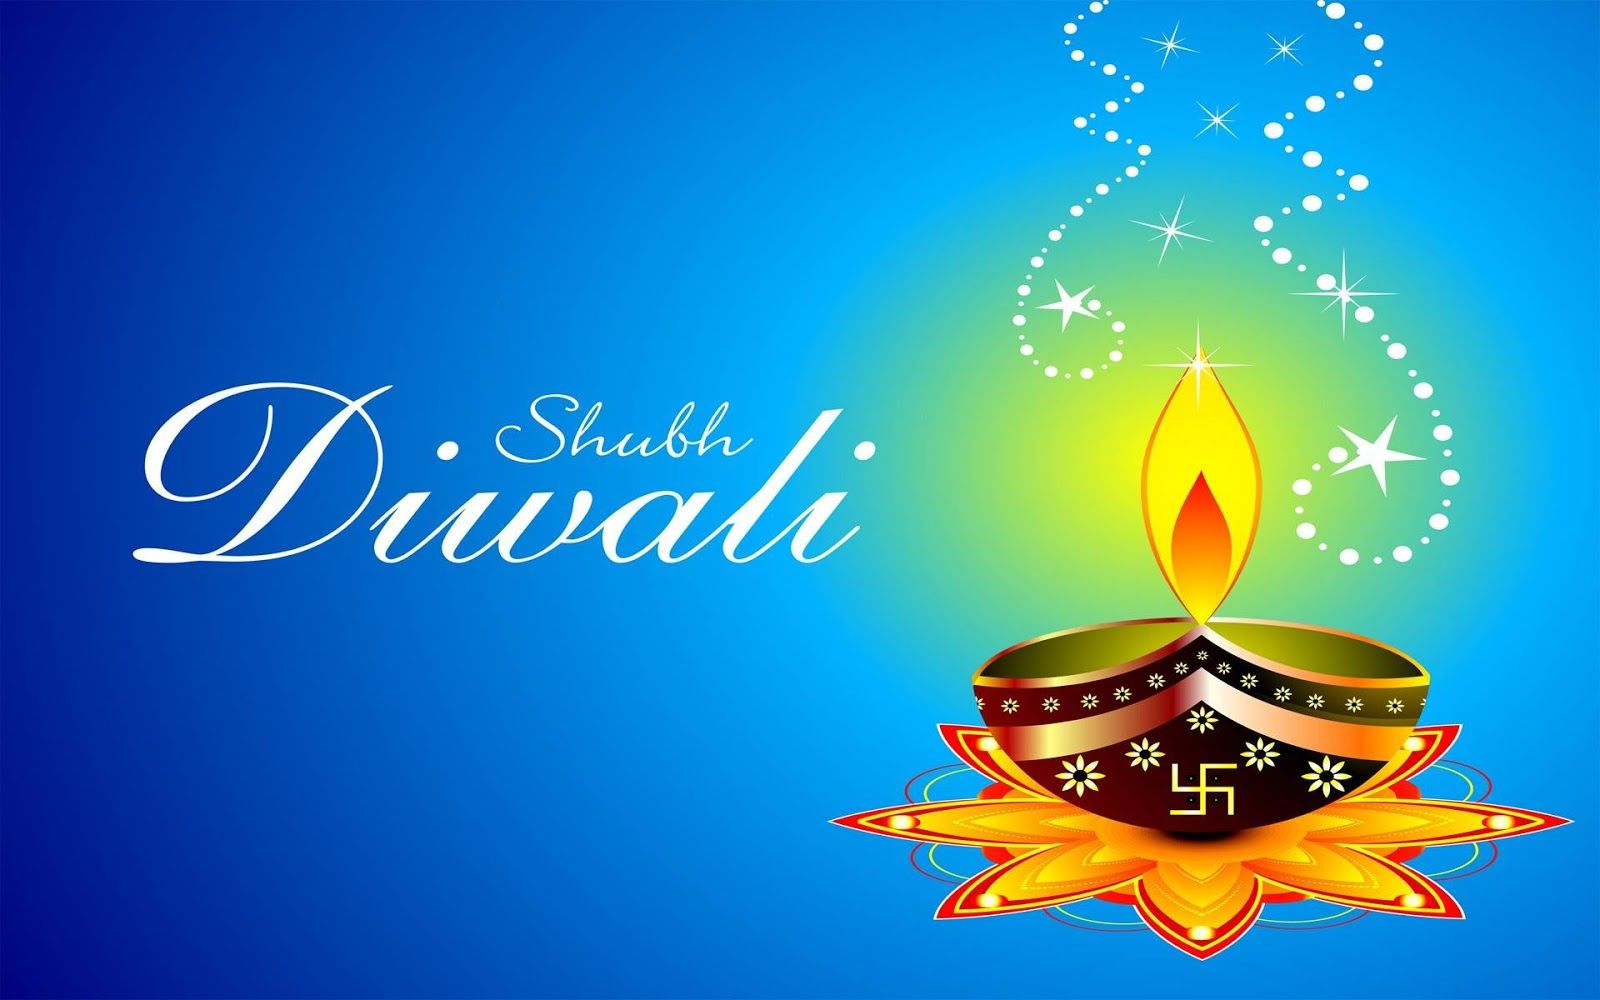 Diwali wishes are you searching for happy diwali wishes then happy diwali 2015 wishes picture messages wallpapers quotes and greetings happy diwali wallpapers 2015 kristyandbryce Choice Image